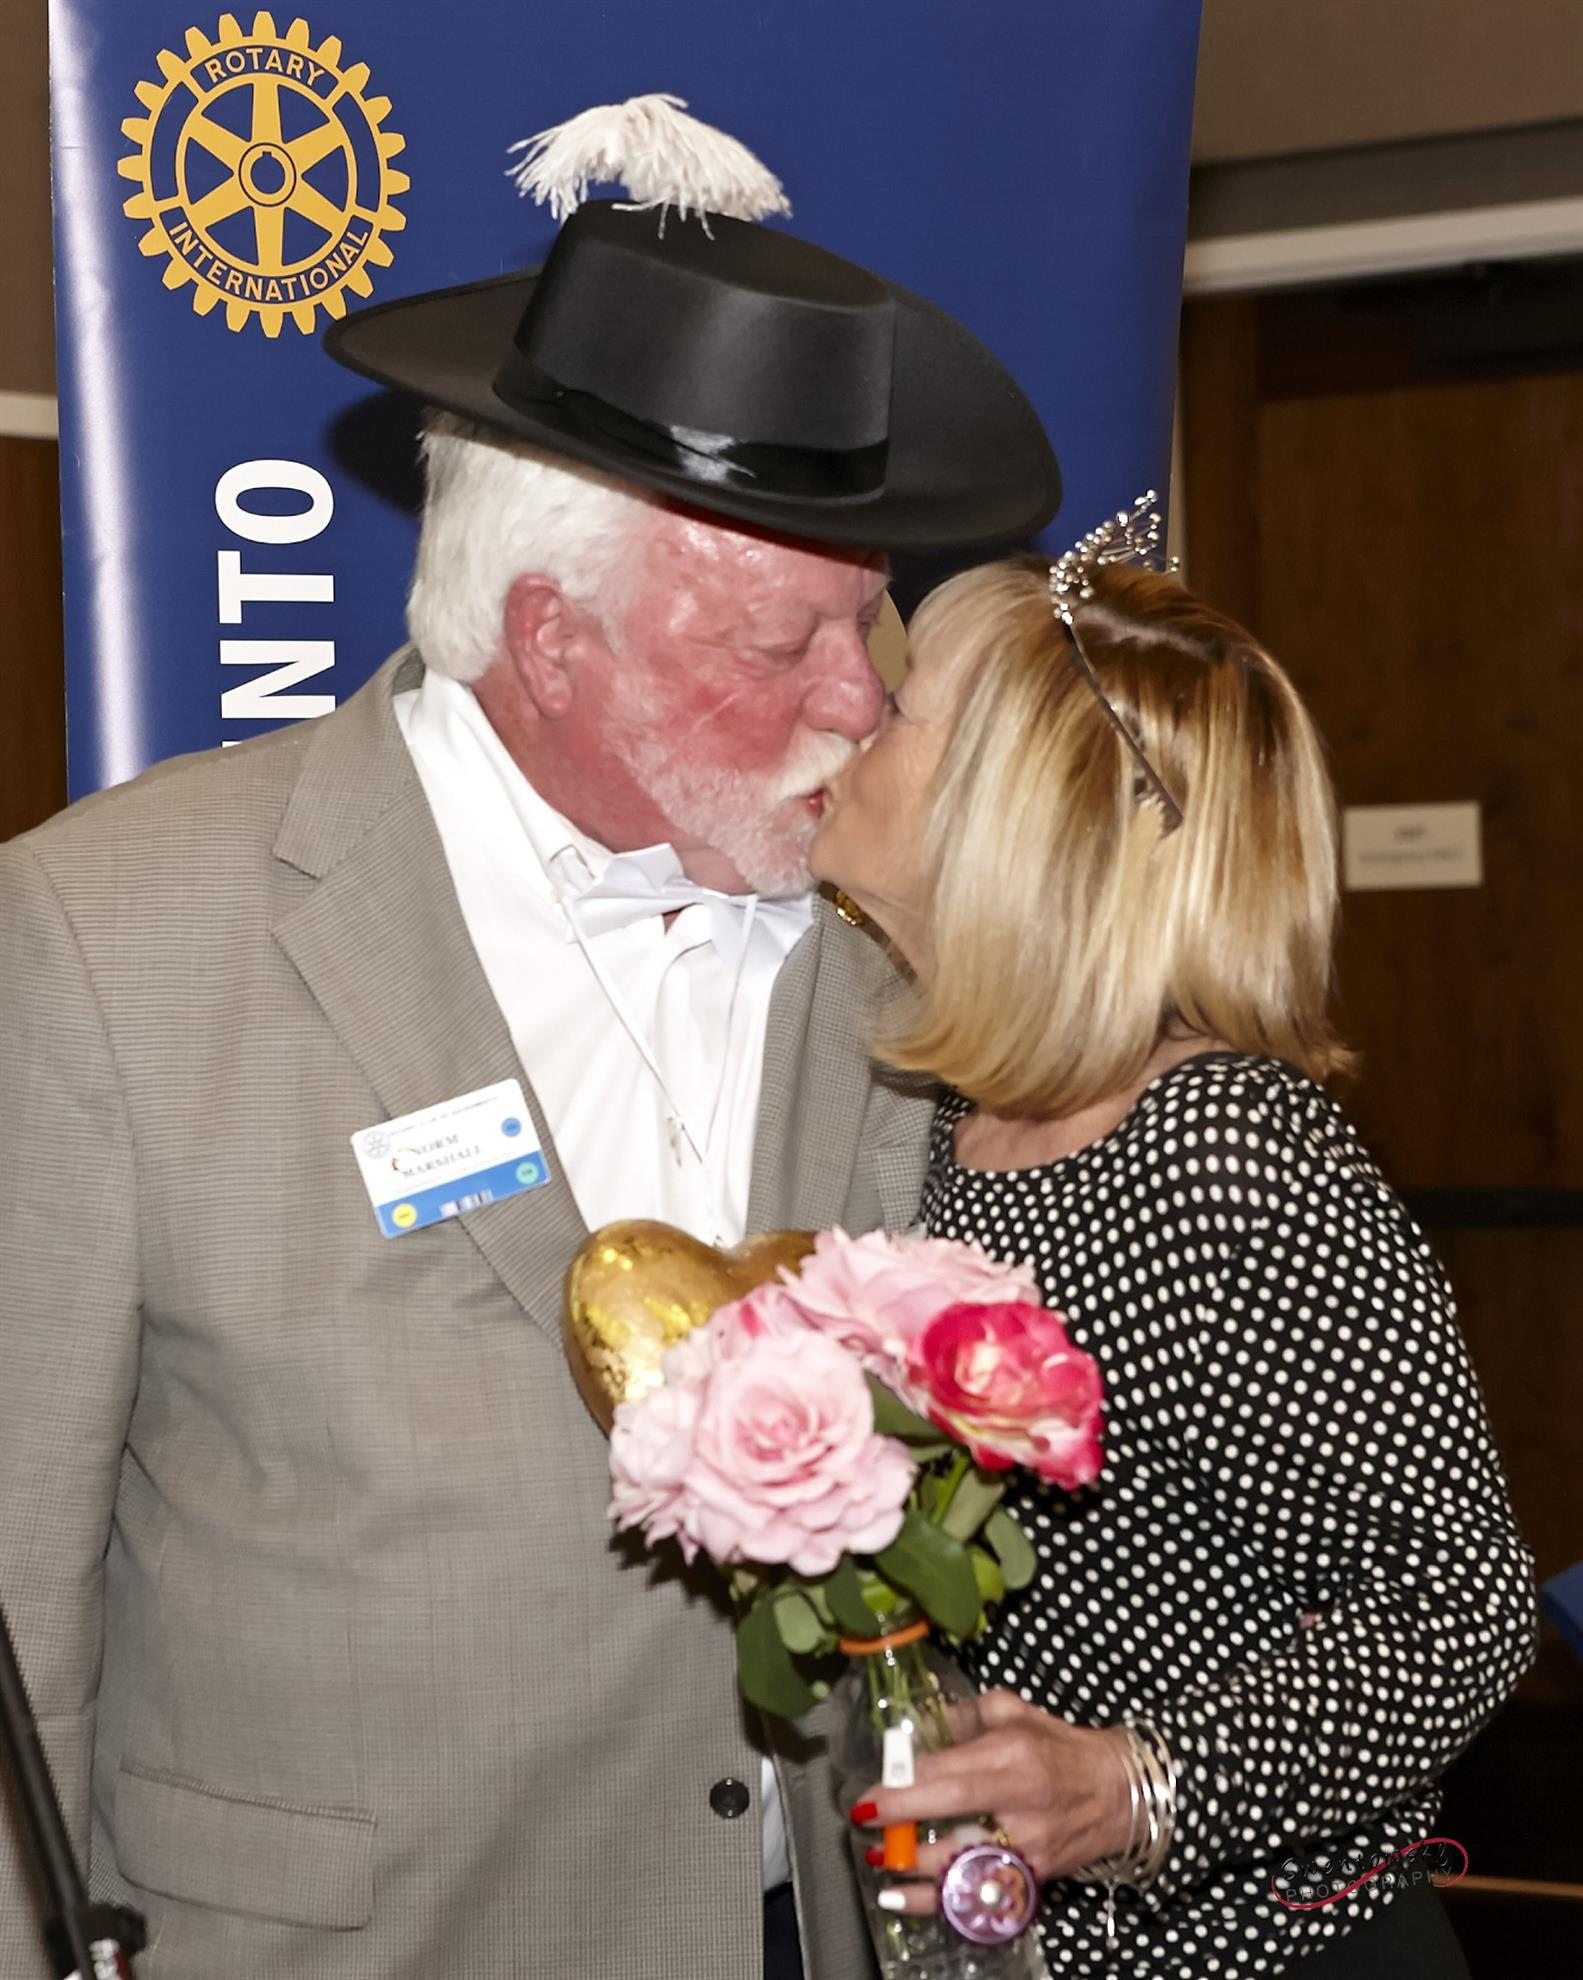 609d1e67fd862f To make it Rotary-official, Past President Dan McVeigh (Downey Brand, LLP)  presided over an impromptu ceremony with the happy couple and pronounced  them ...